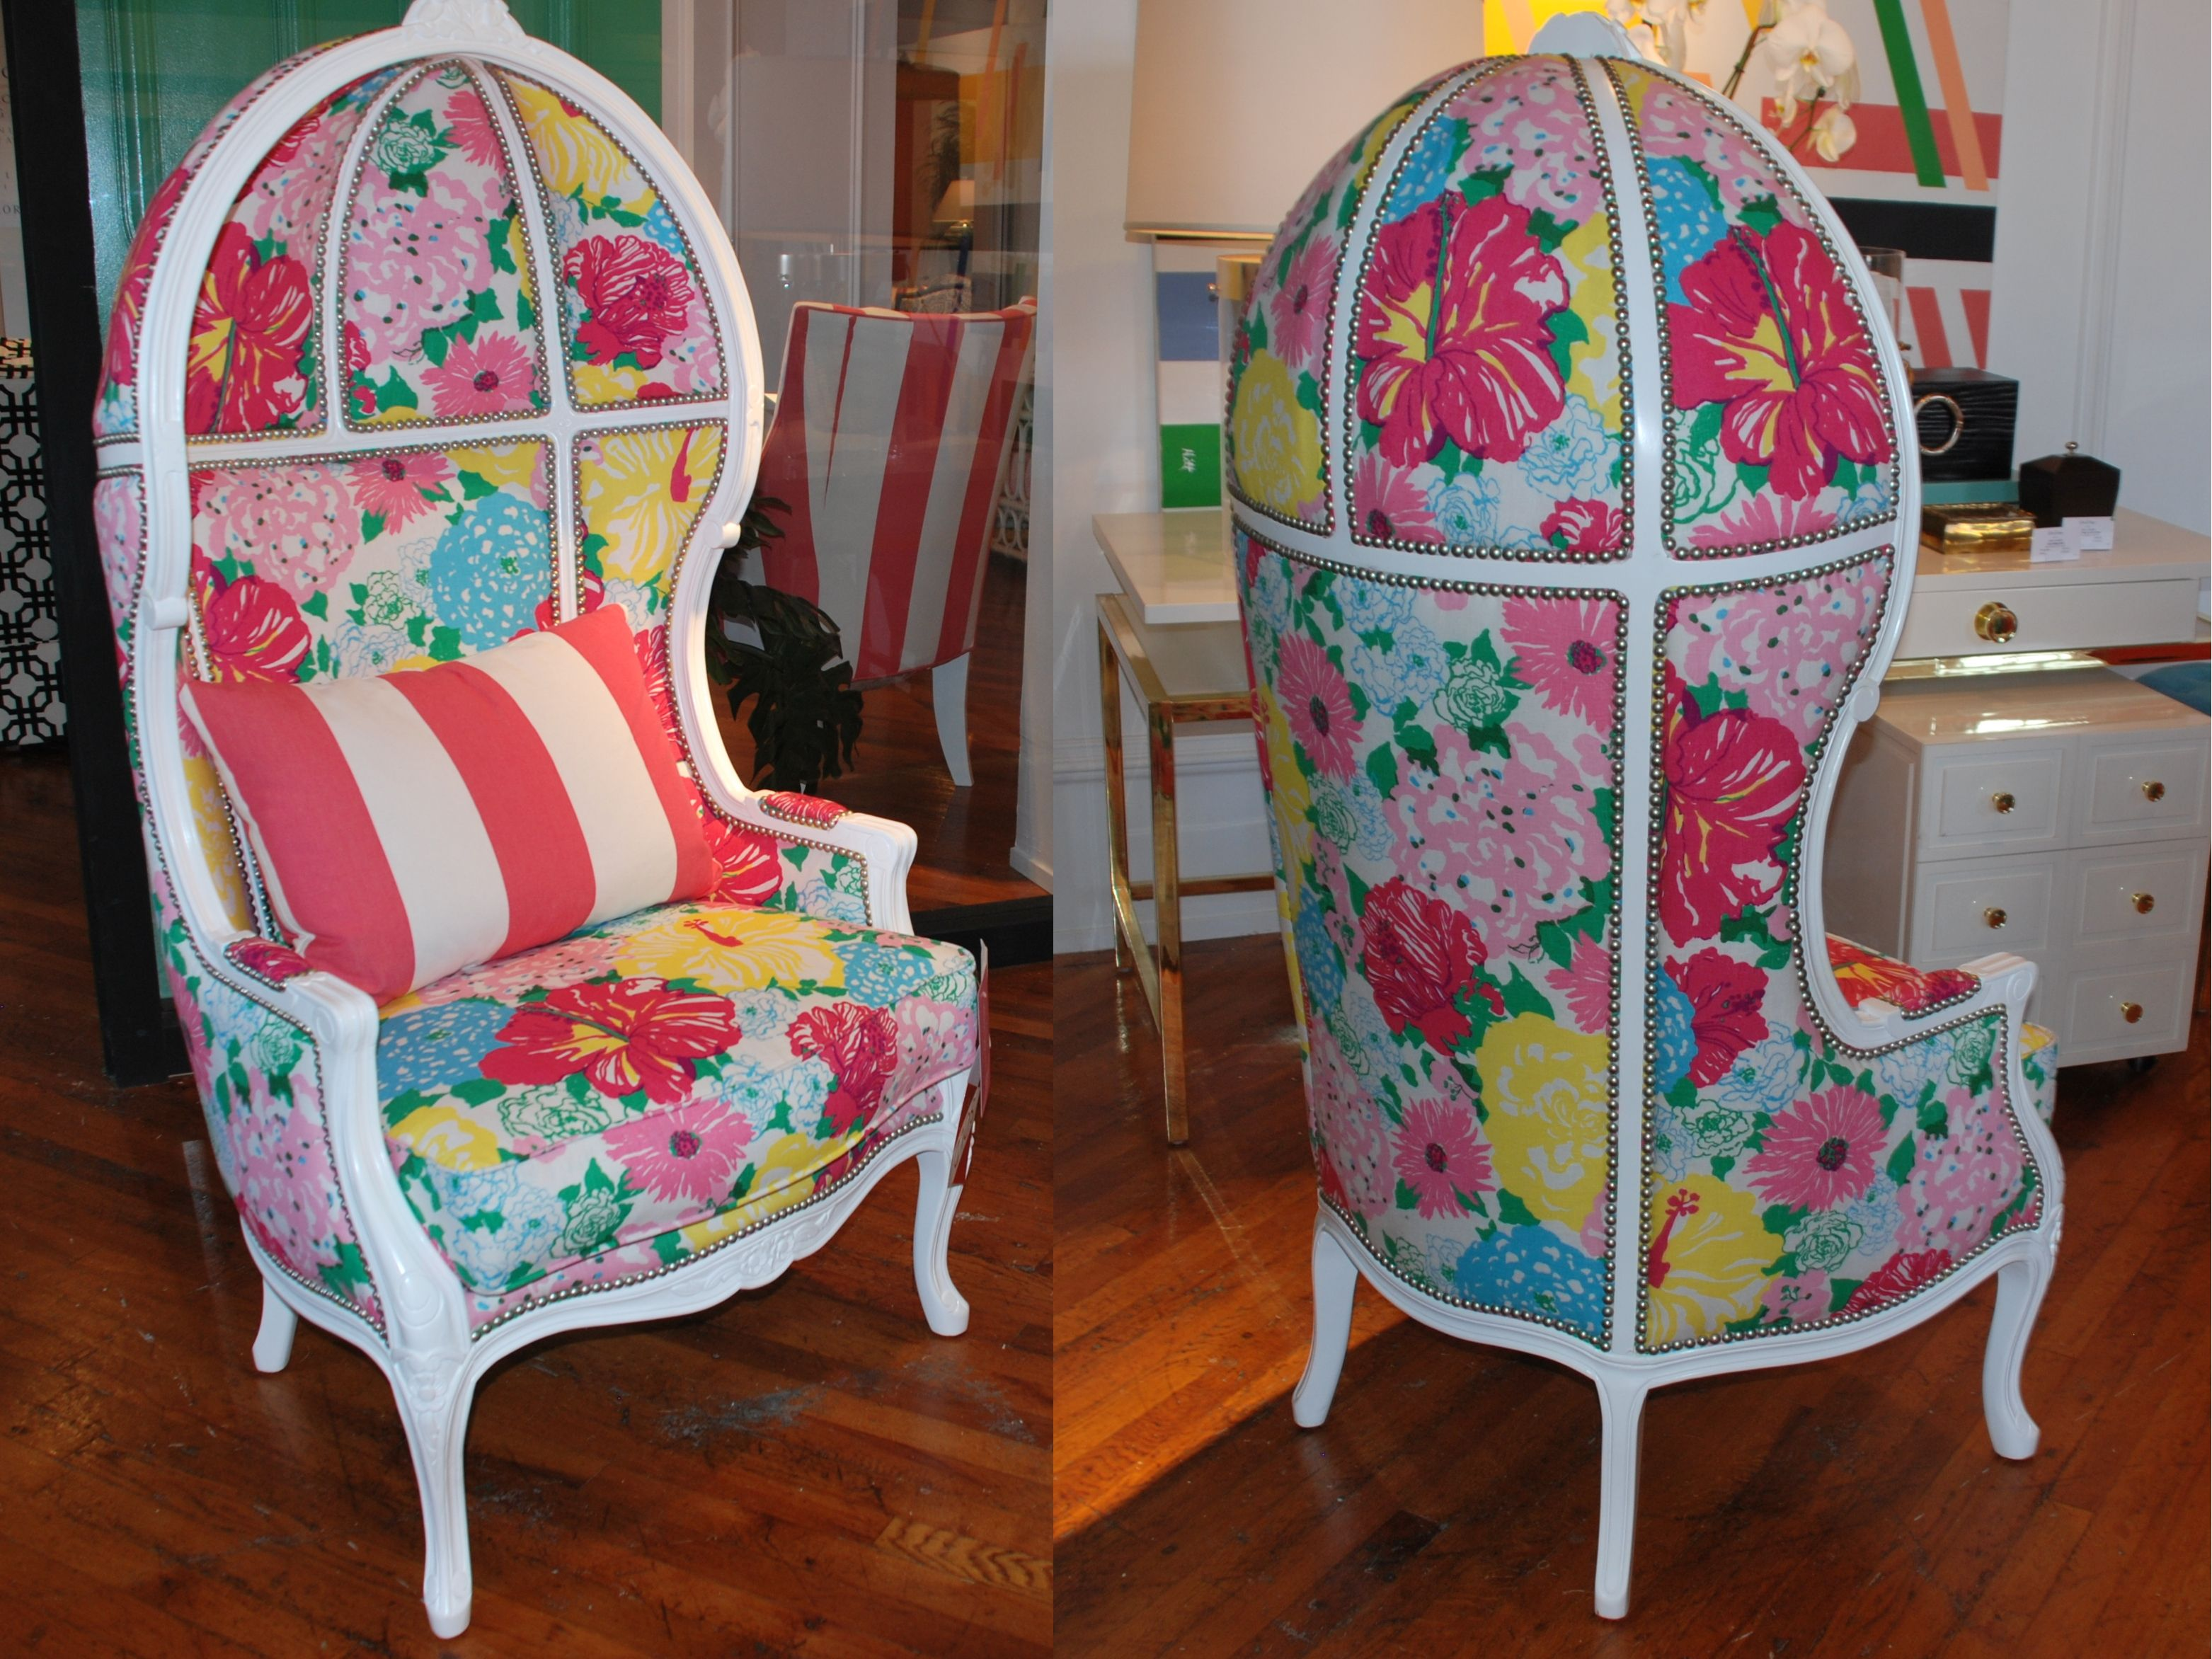 Lilly Pulitzer Furniture 33 Best Lily Pulitzer Interiors Images On Pinterest  Lily